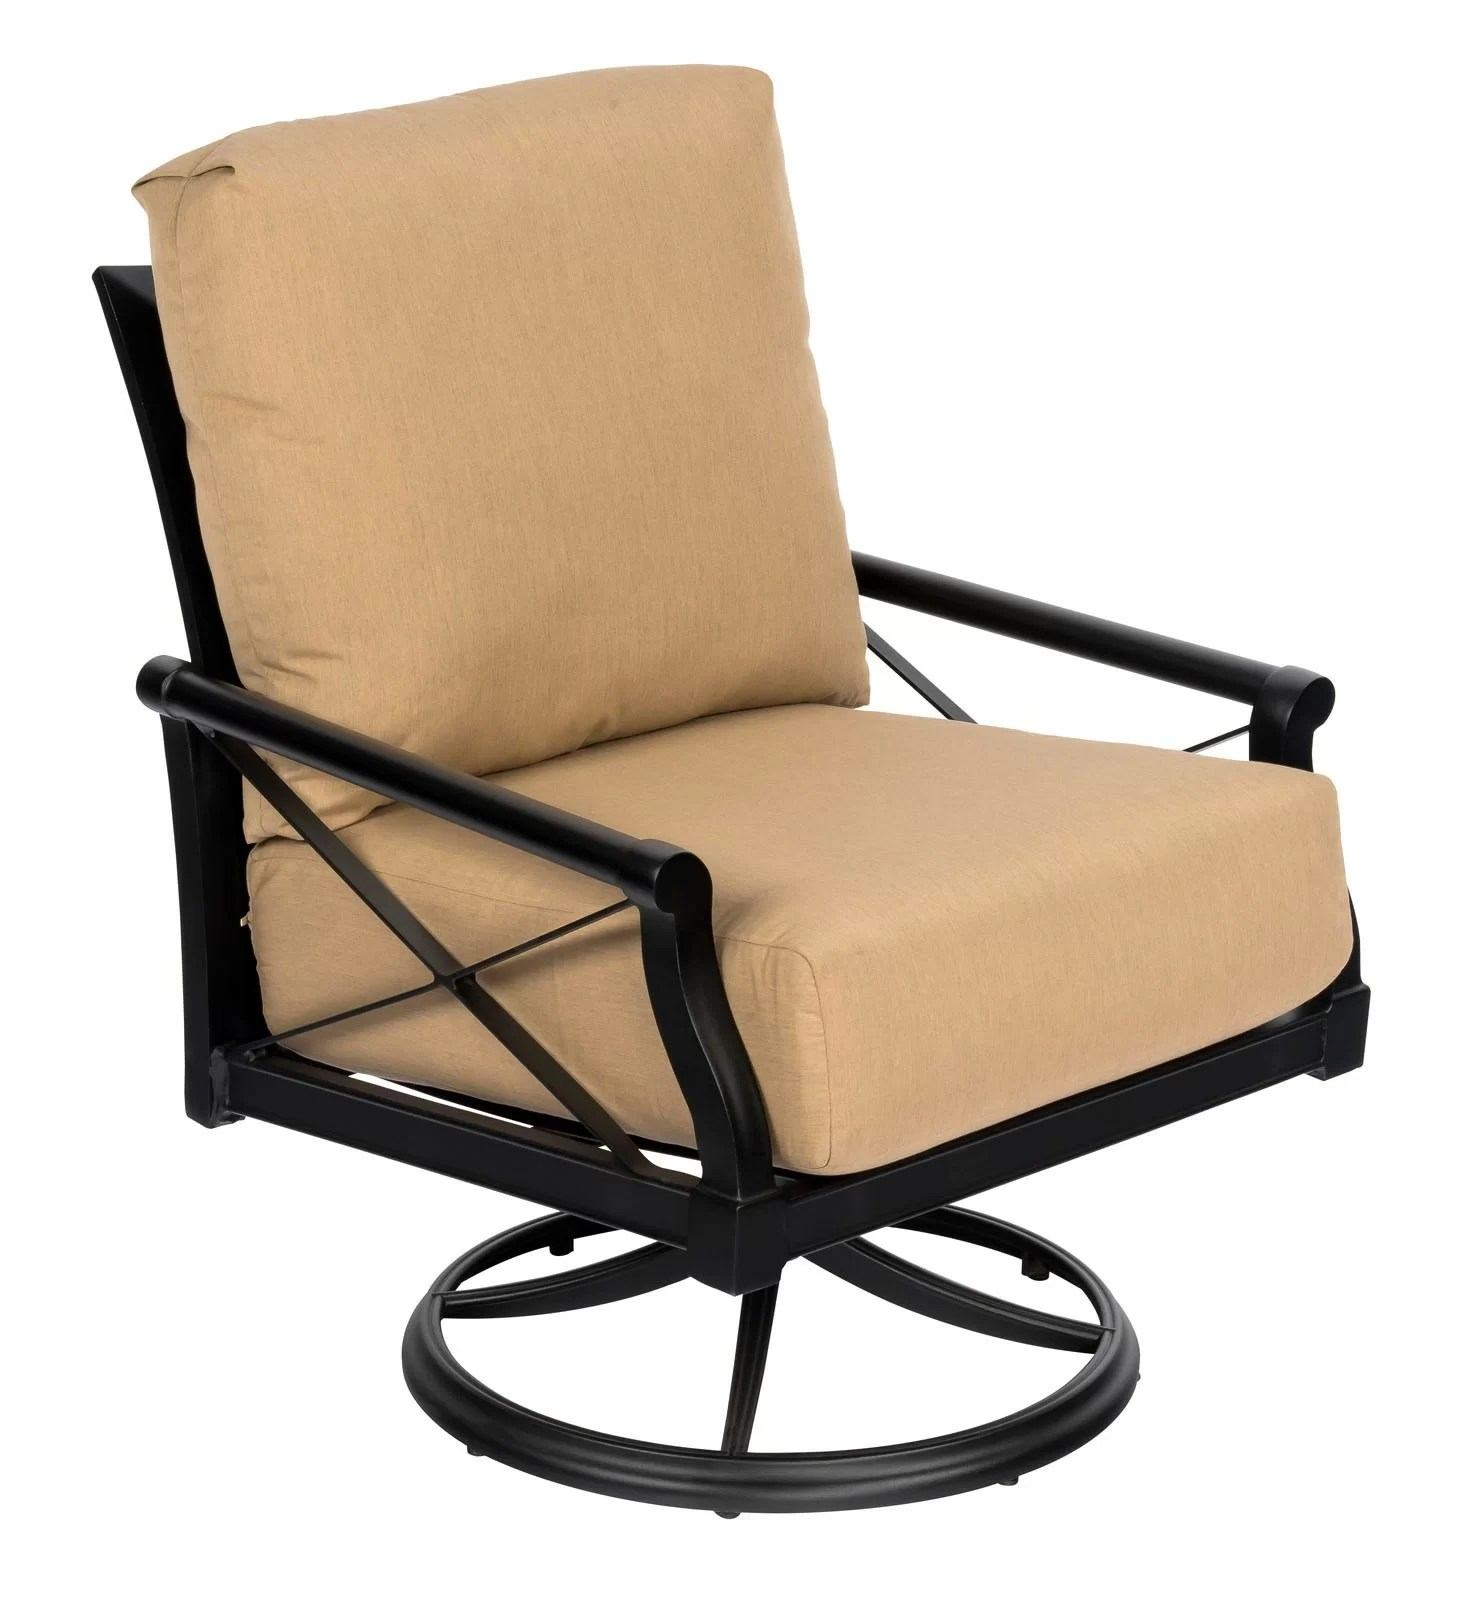 Swivel Rocking Chairs Andover Swivel Rocking Chair With Cushions